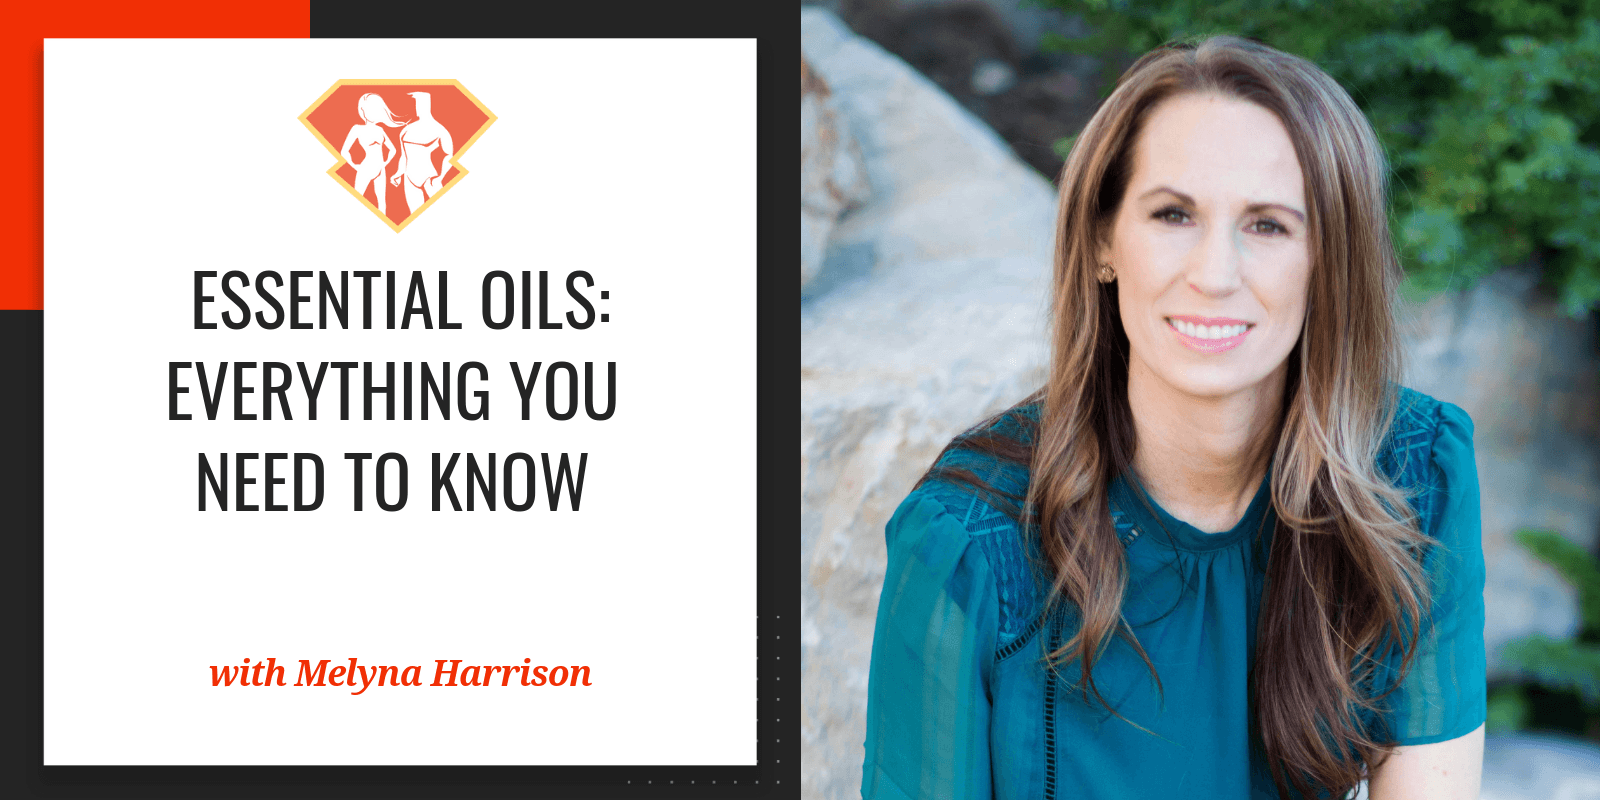 In this episode with Melyna Harrison, we learn all about essential oils, their importance, their uses, as well as how you can start using them today!